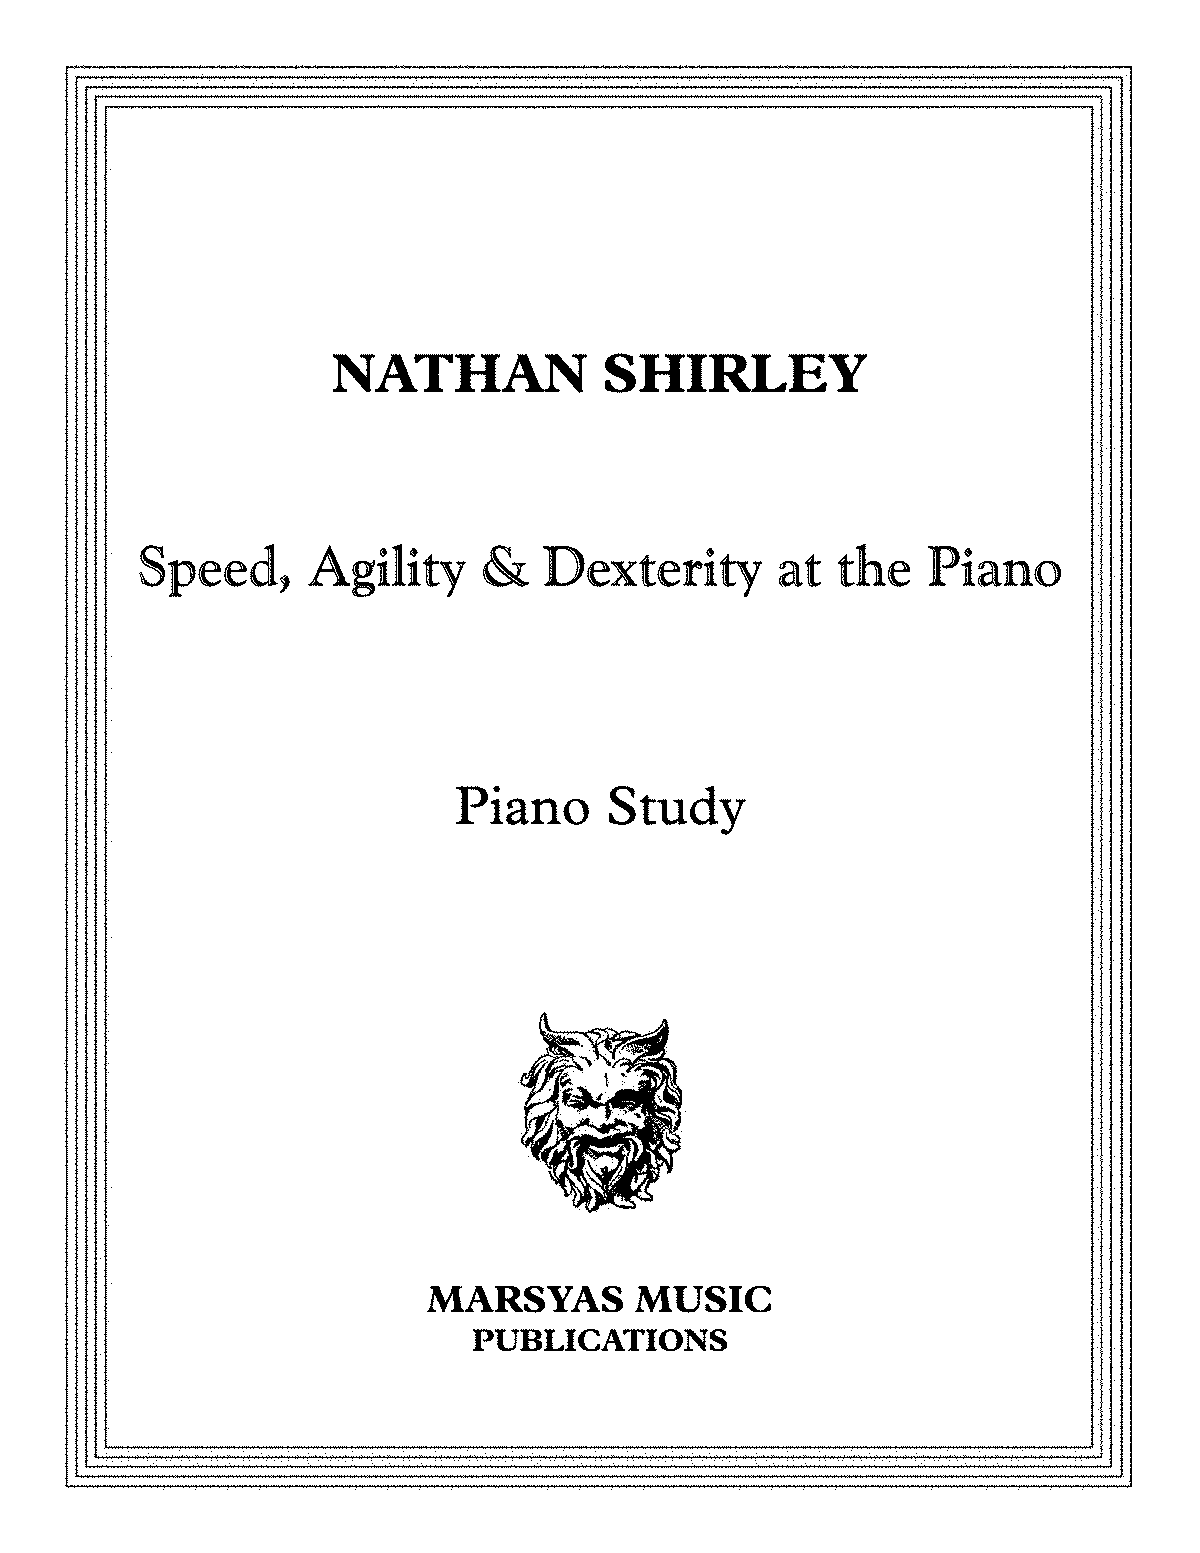 PMLP425724-Speed, Agility & Dexterity at the Piano.pdf